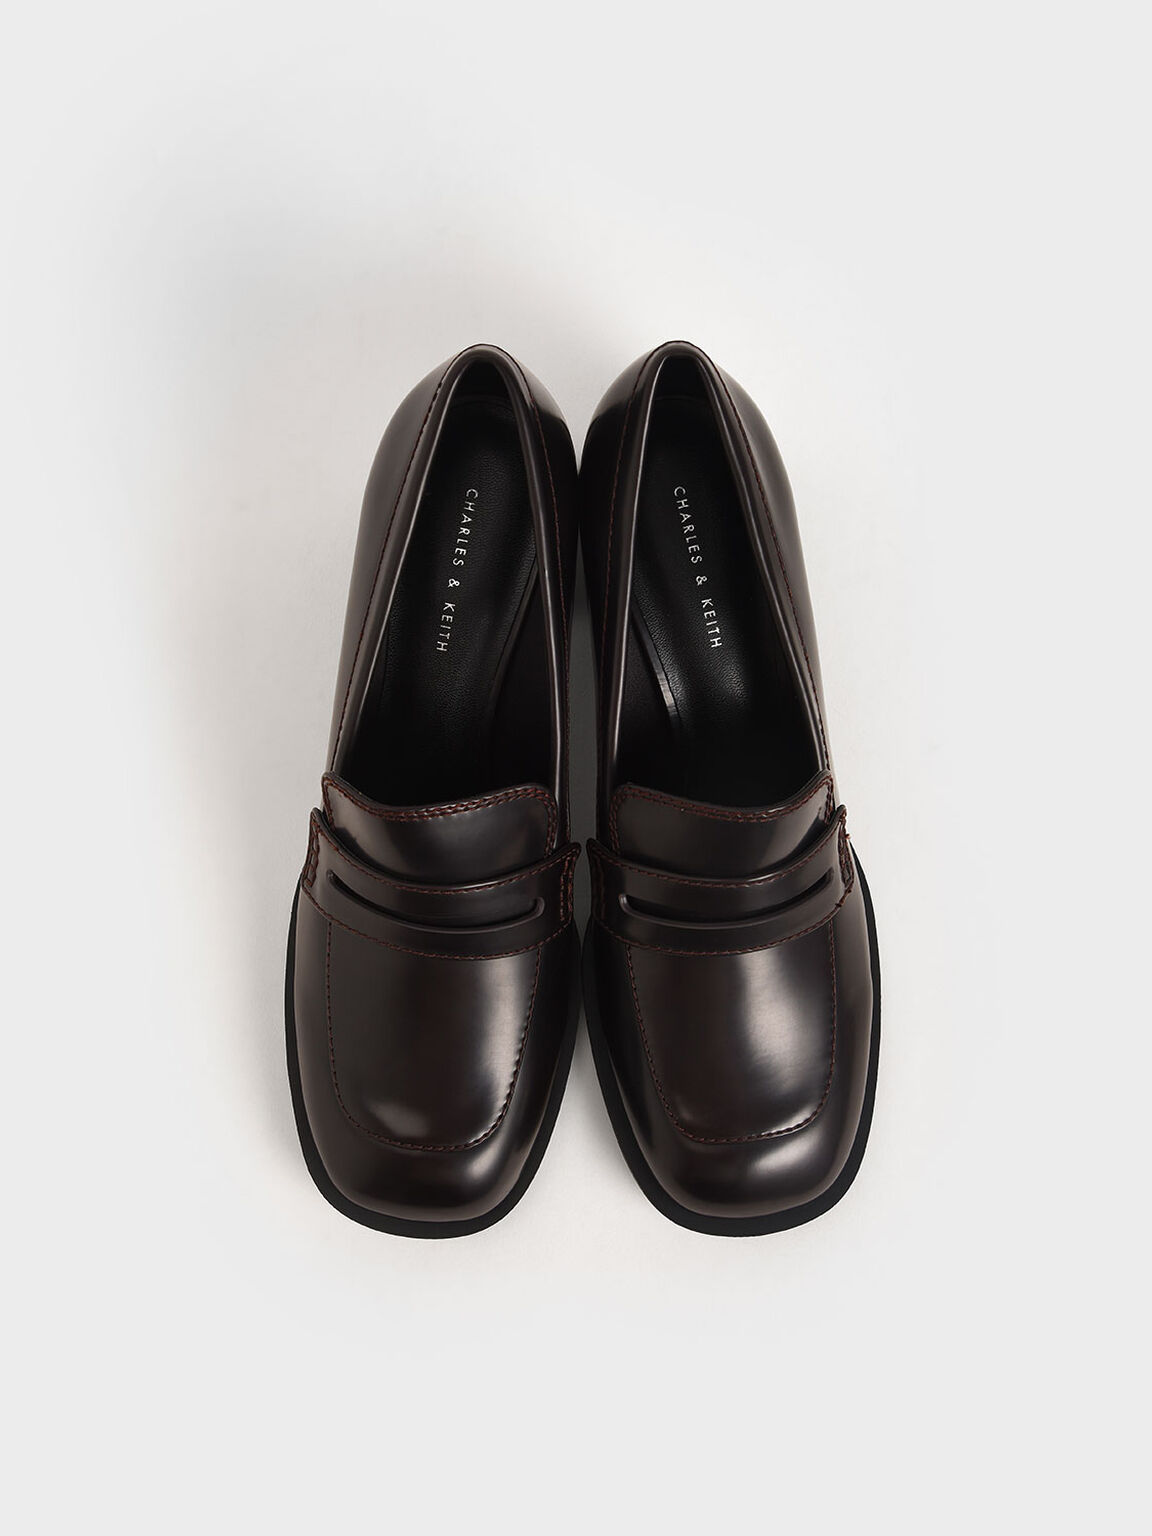 Penny Loafer Court Shoes, Burgundy, hi-res